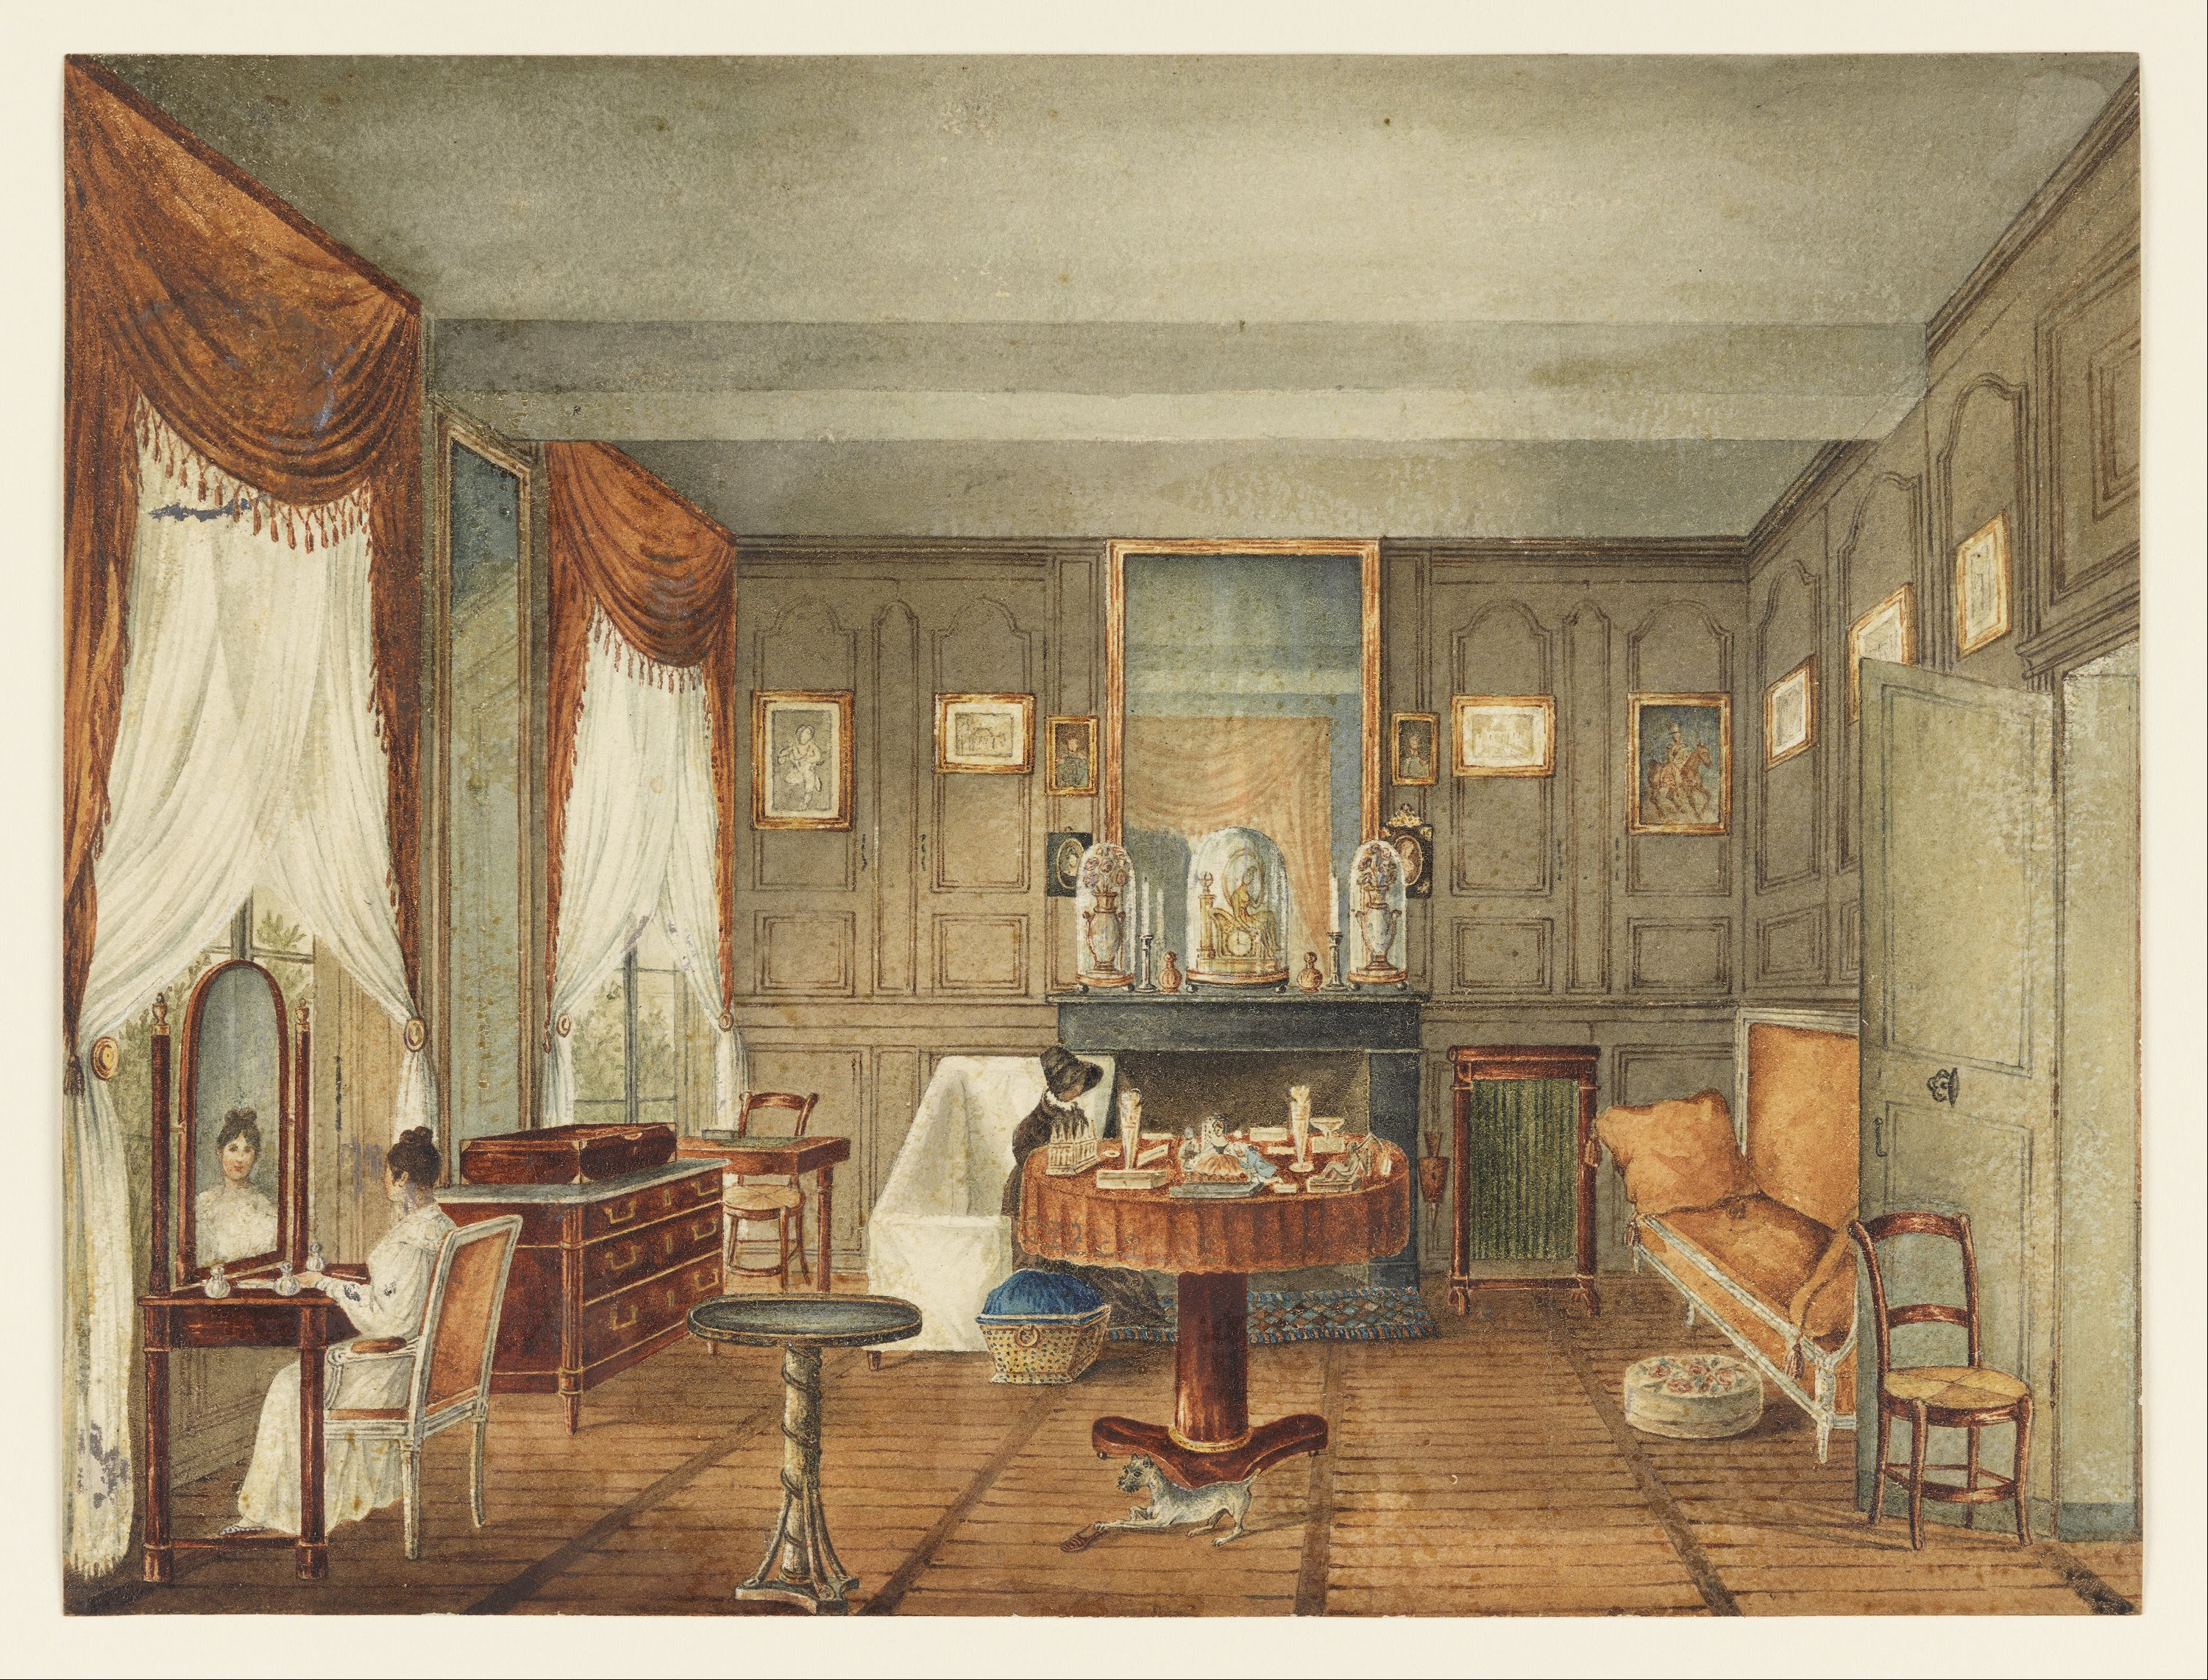 FileView of a Morning Room Interior Google Art Projectjpg